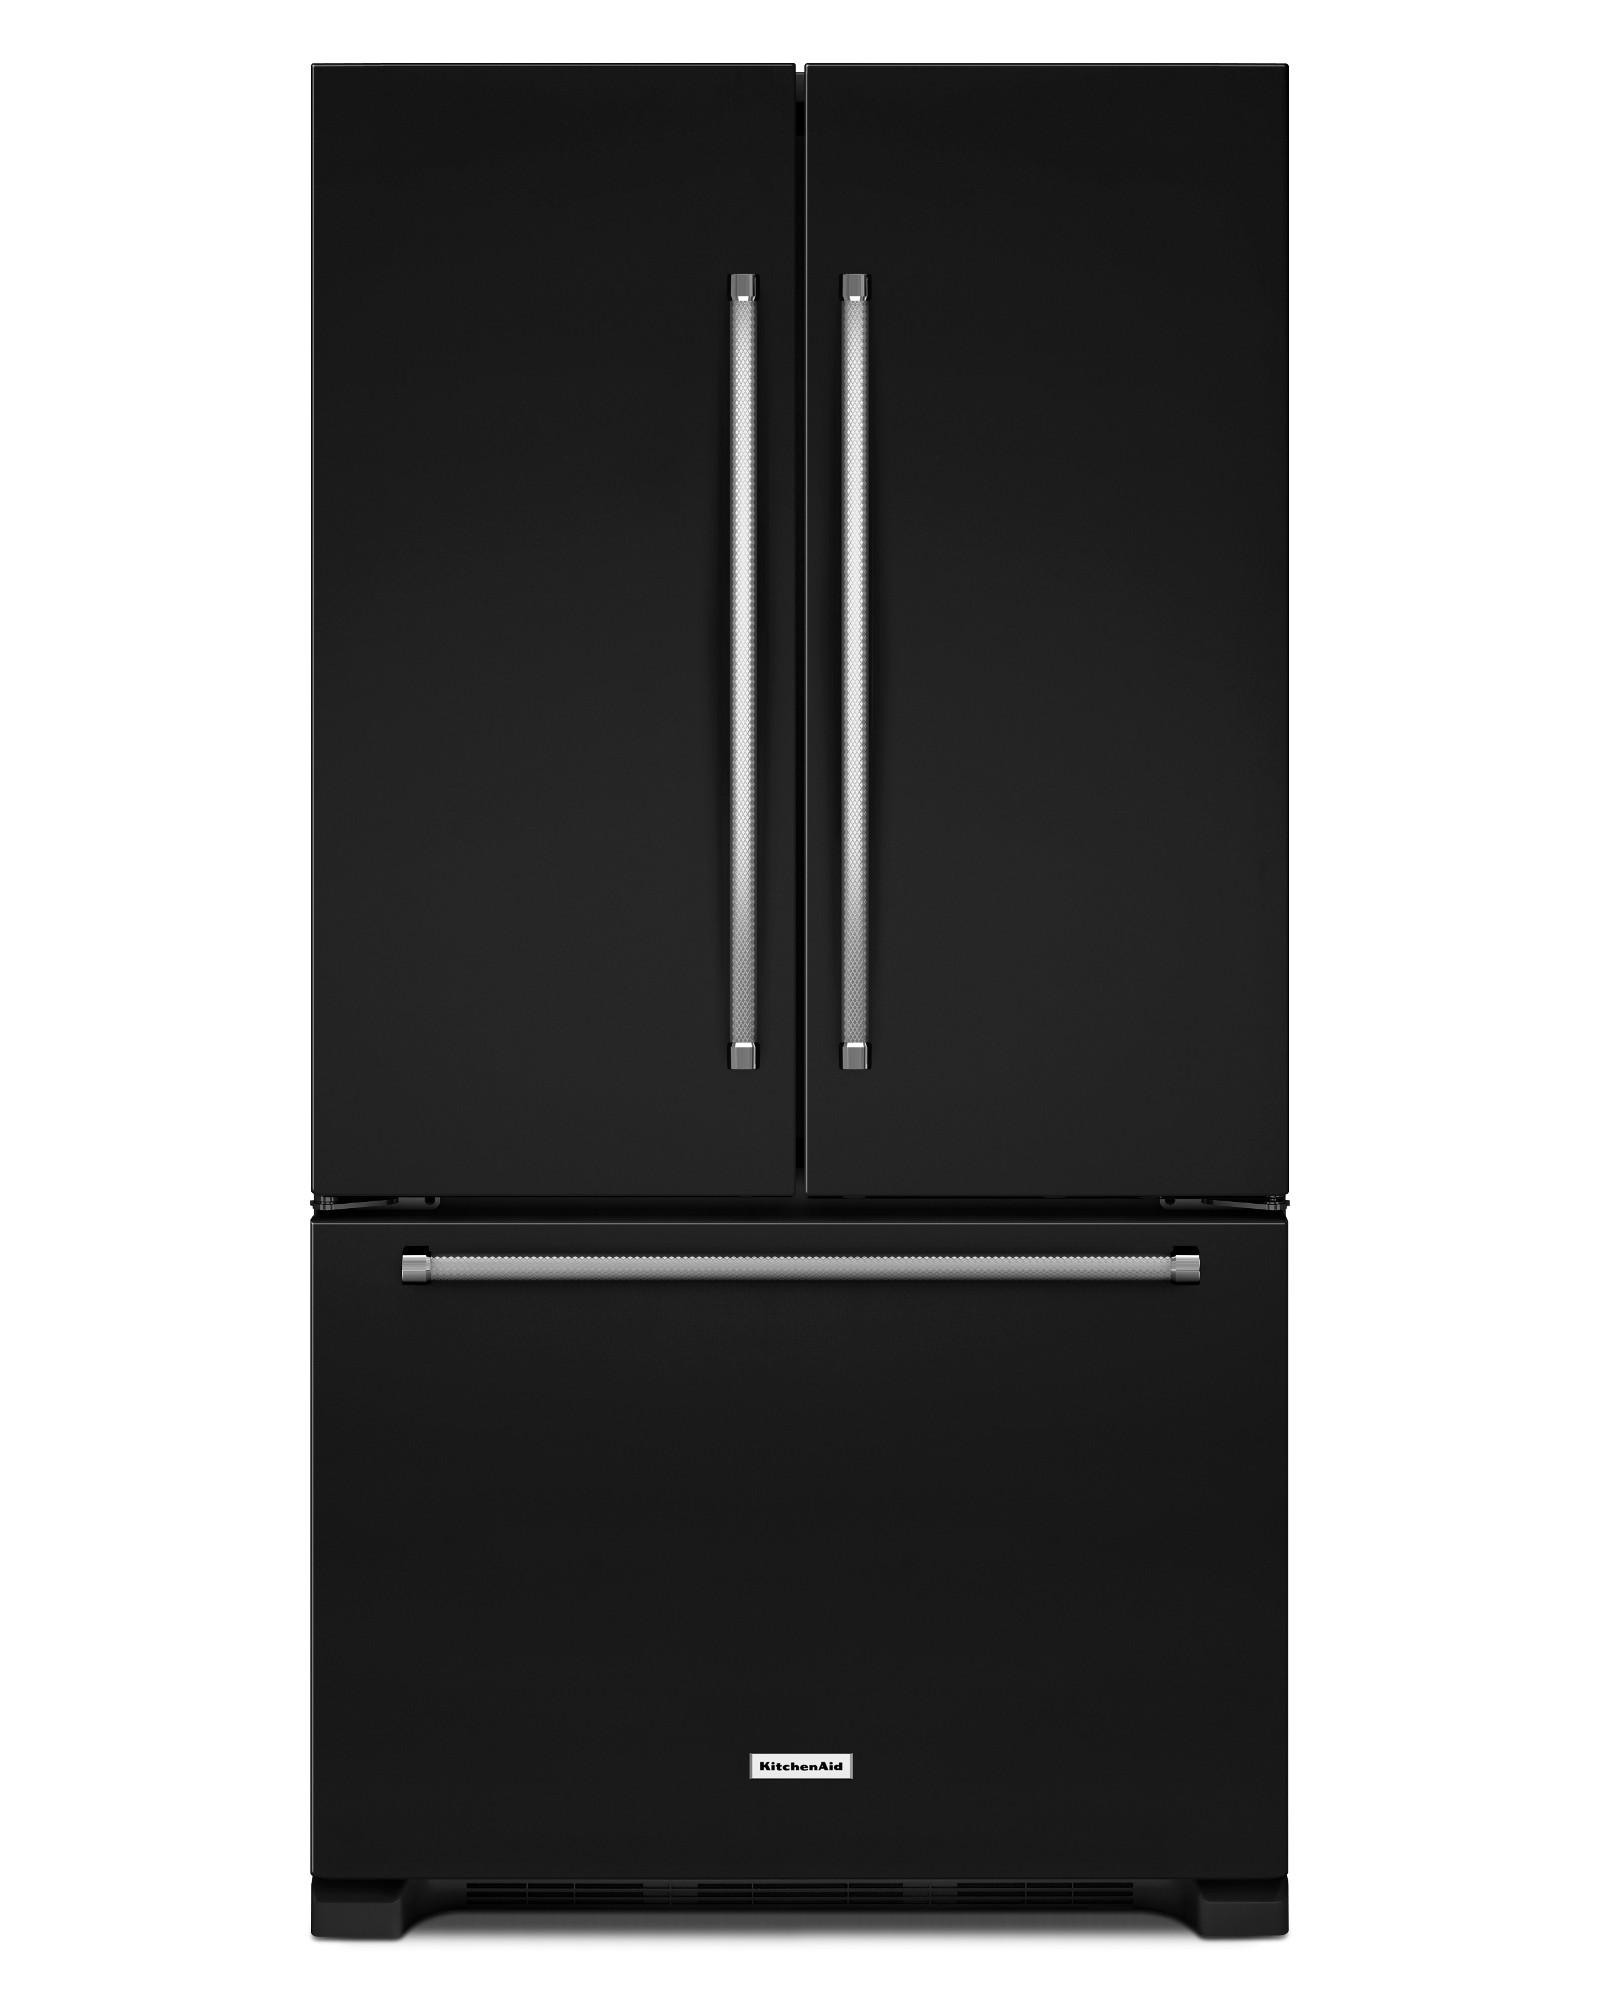 KitchenAid KRFC300EBL 20 cu. ft. Counter-Depth French Door Refrigerator - Black